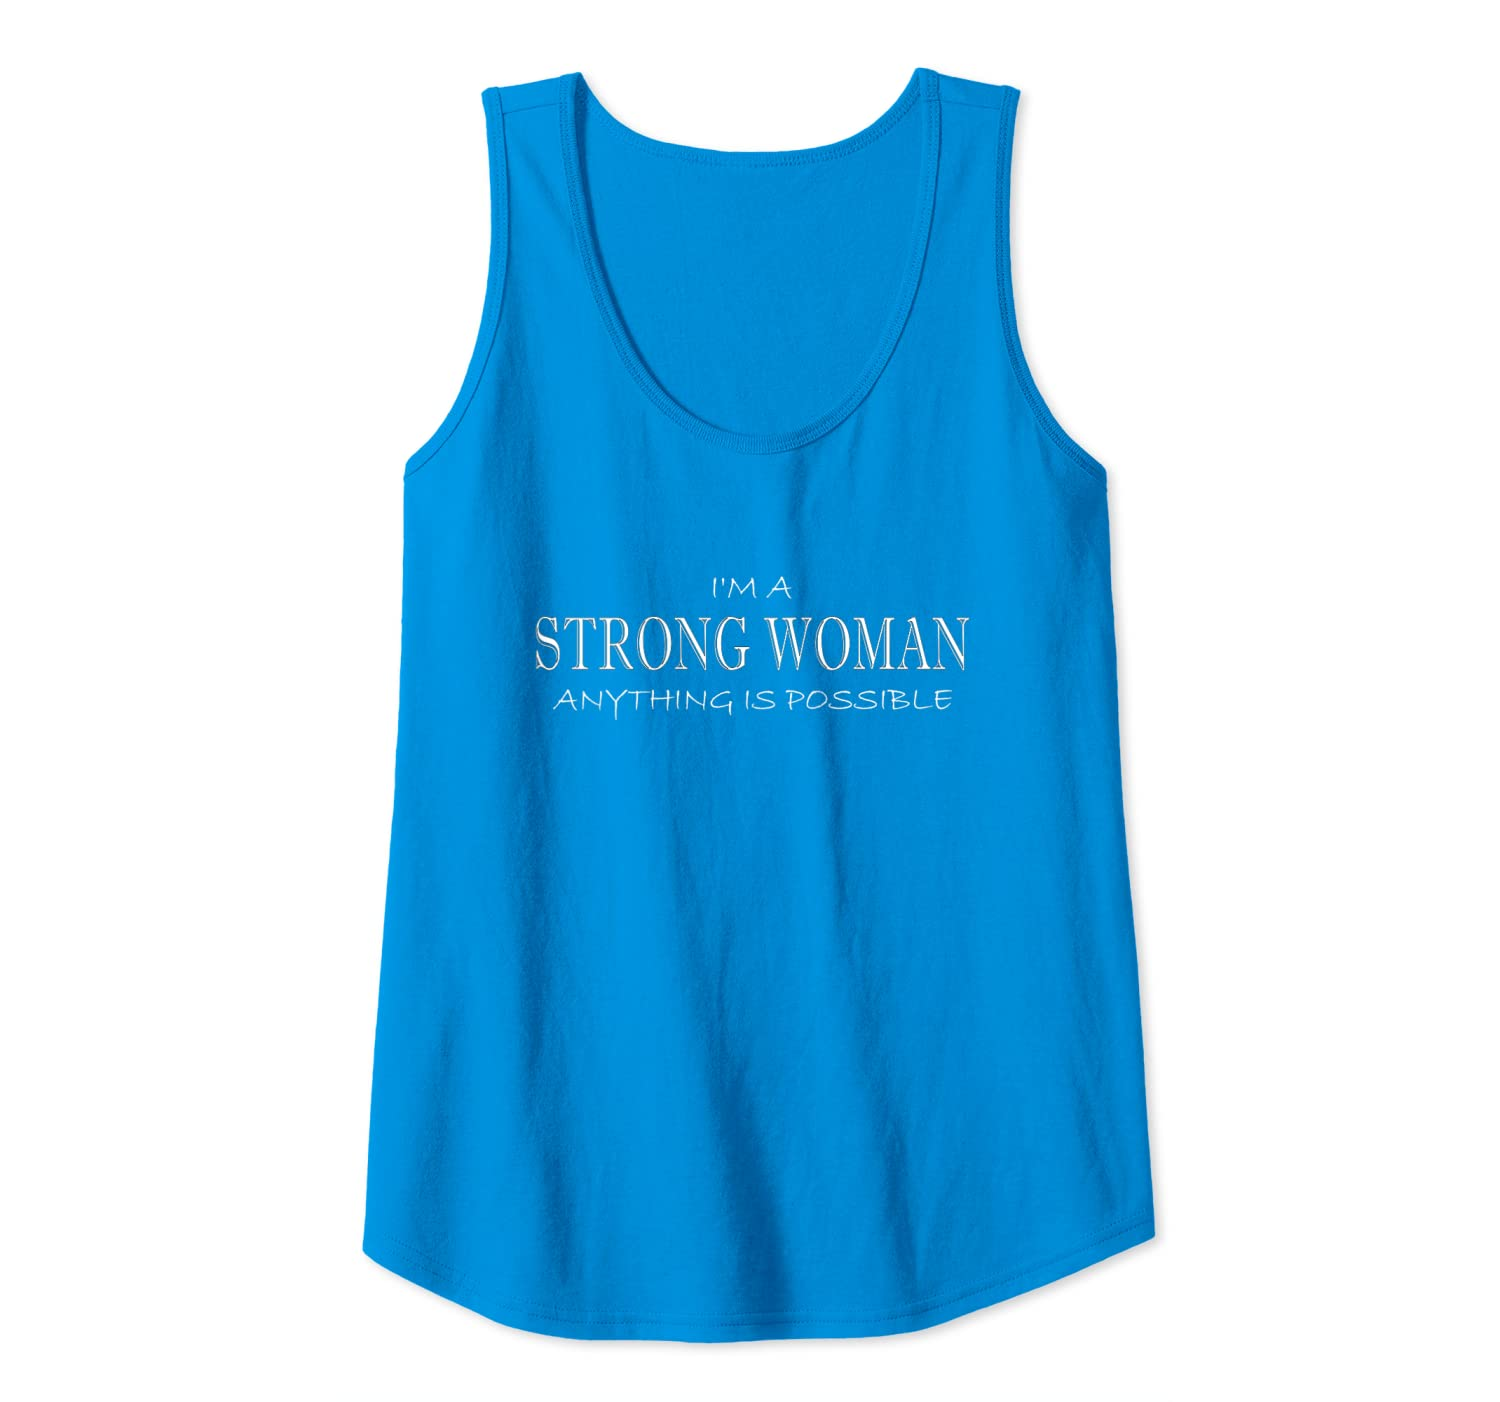 STRONG WOMAN Anything Is Possible anti sexism oppression Tank Top